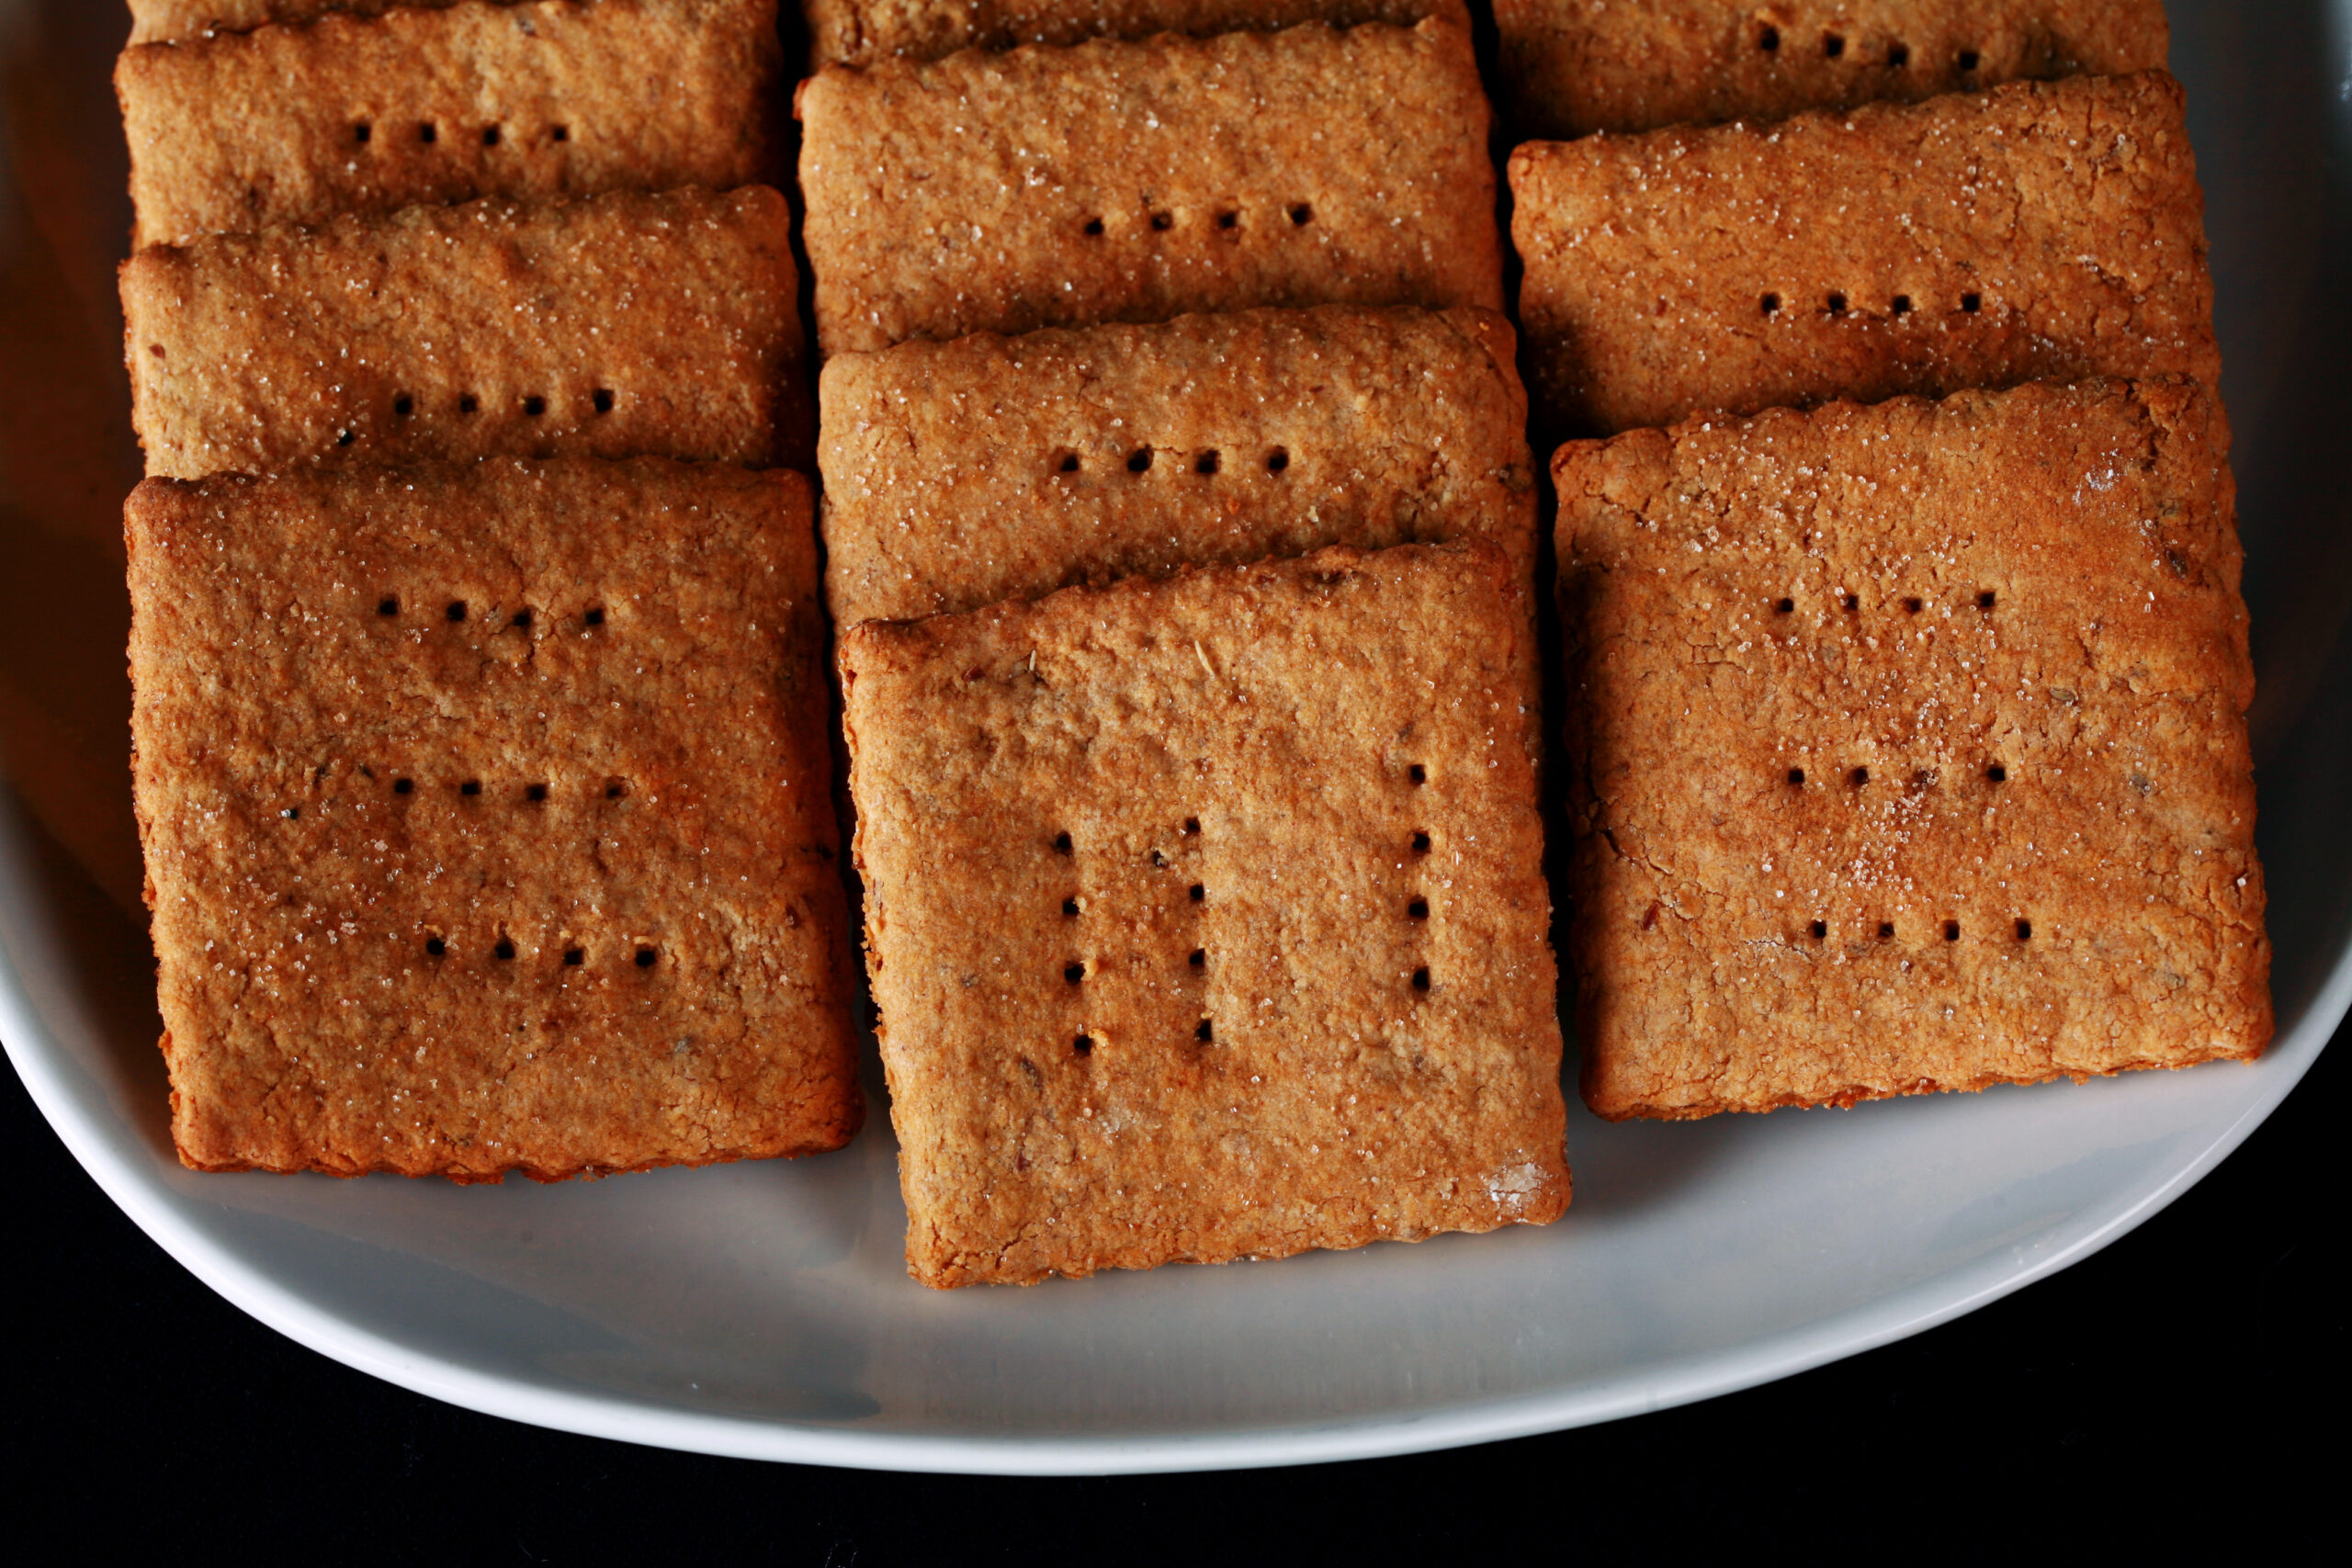 A white plate with rows of square shaped gluten-free graham crackers.